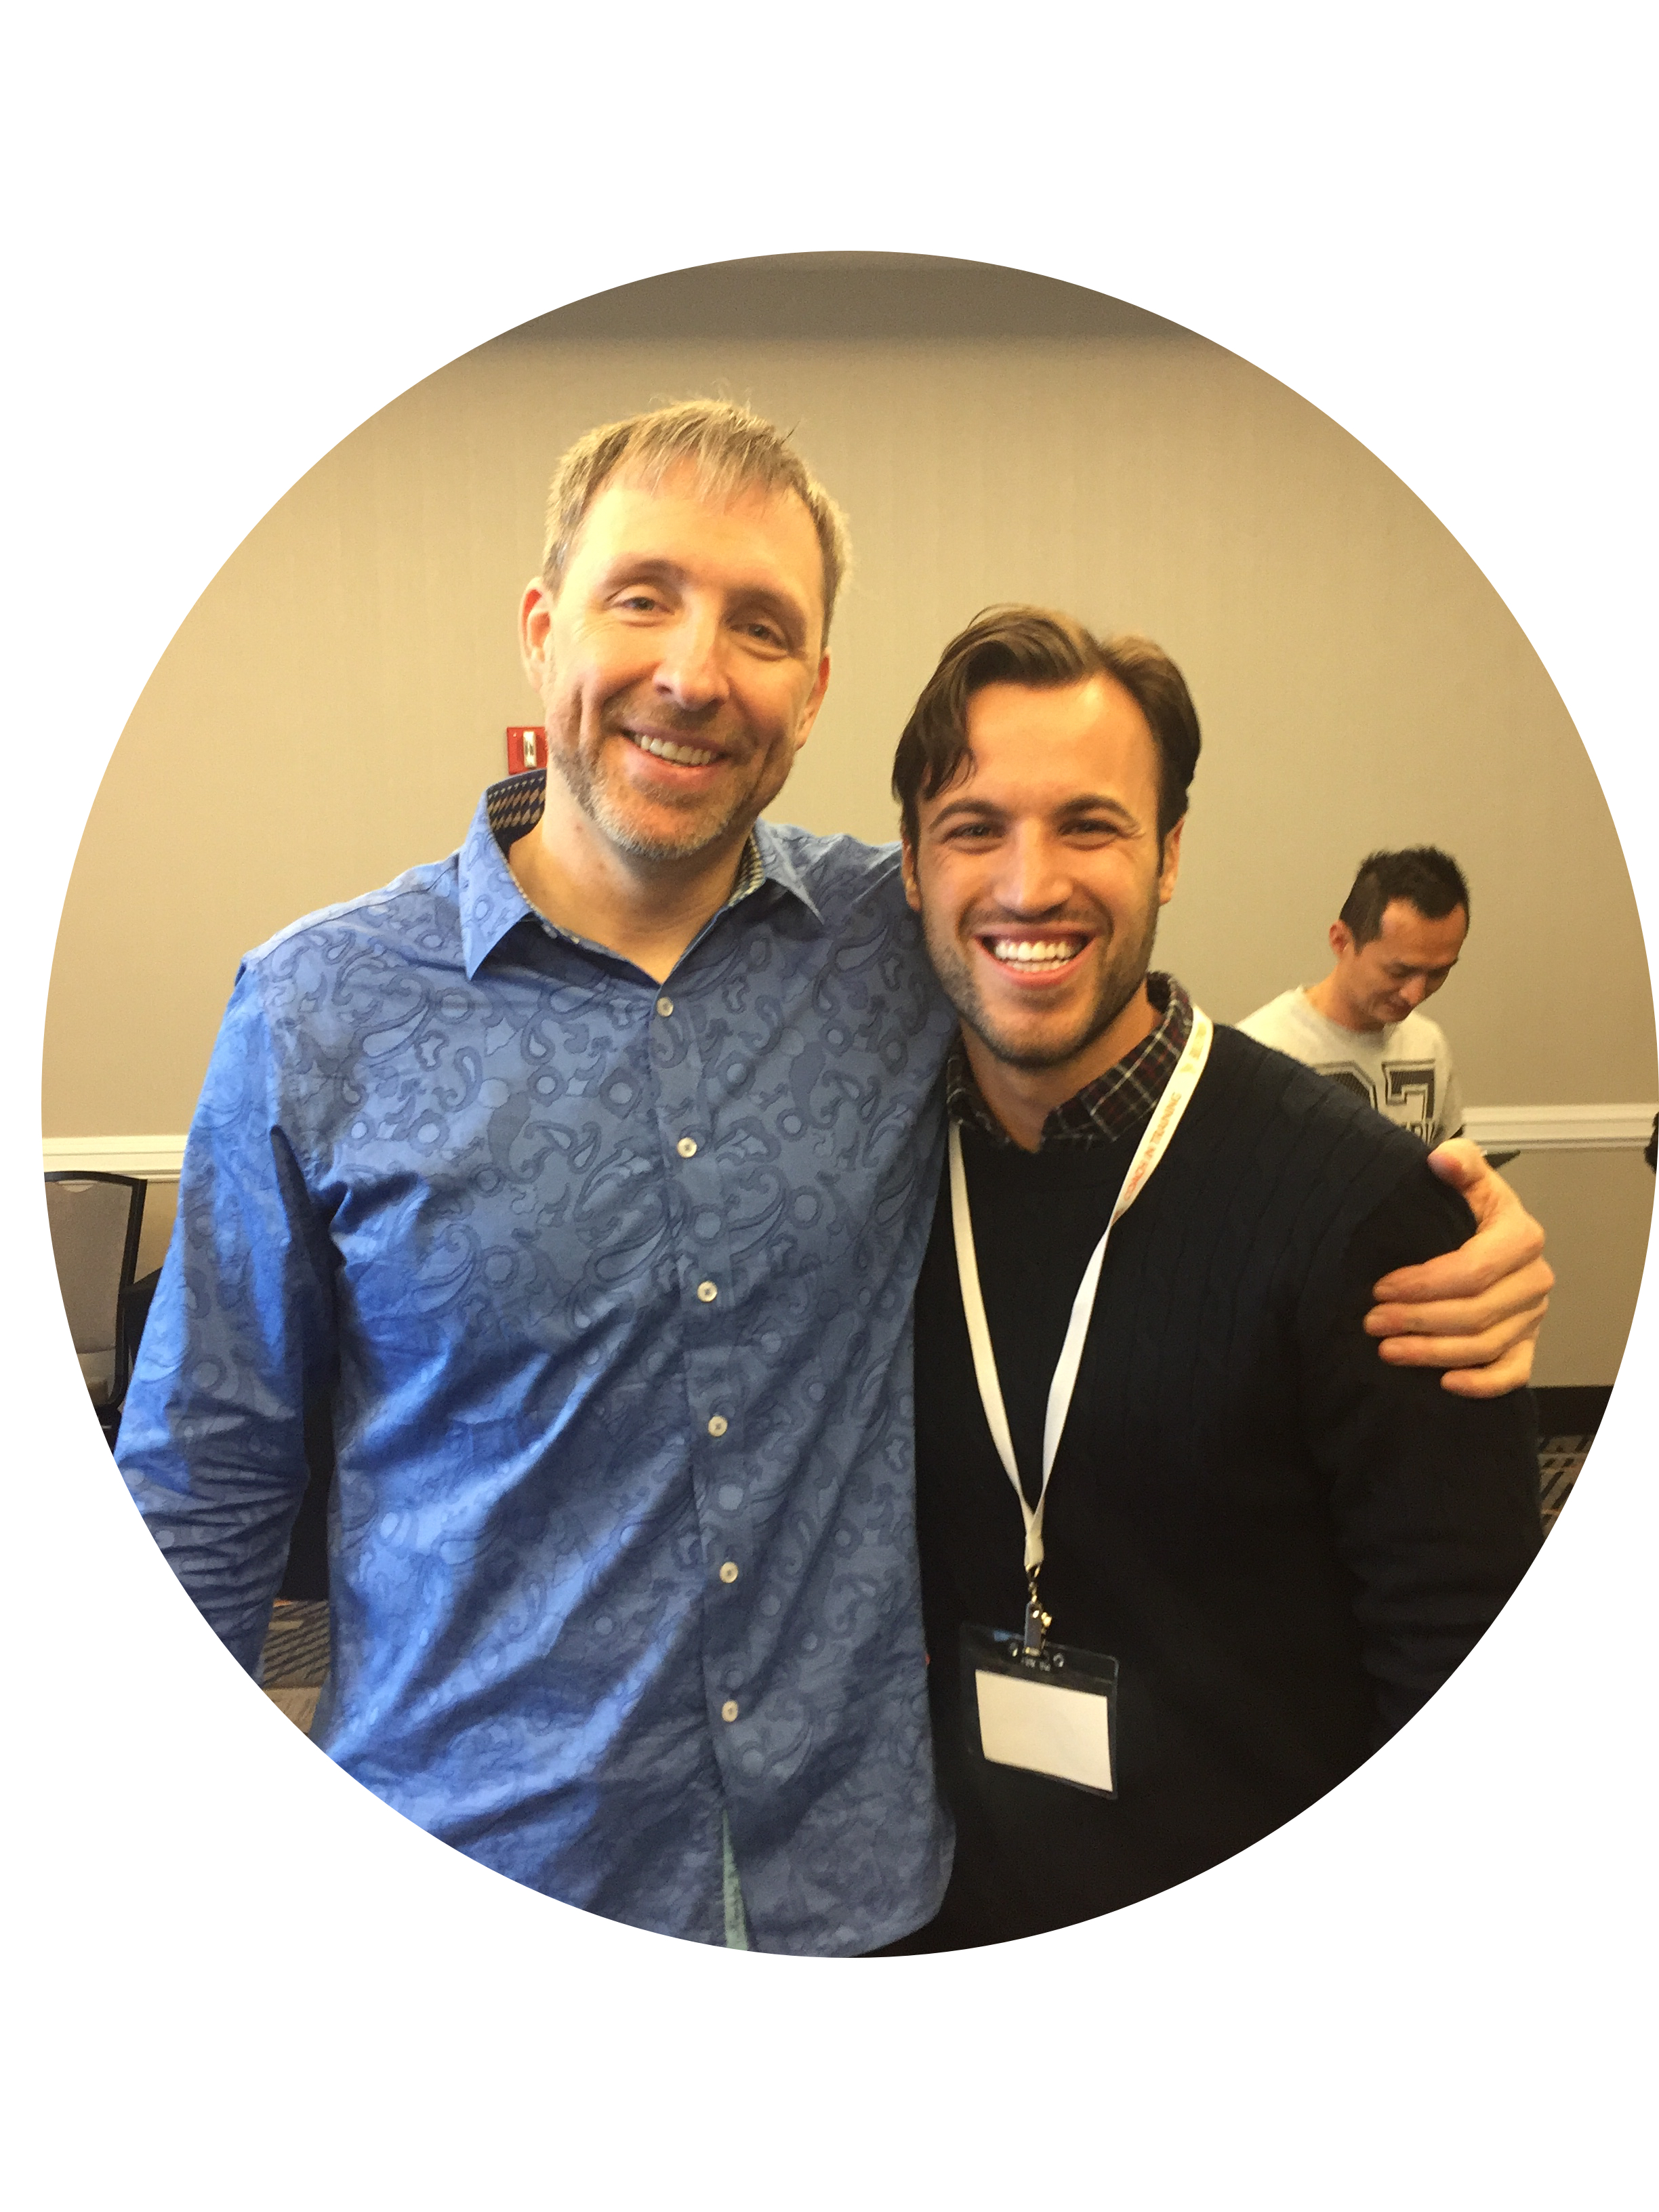 Dave Asprey and I at the Bulletproof Coach Training weekend intensive in Brooklyn, NY Feb 2016